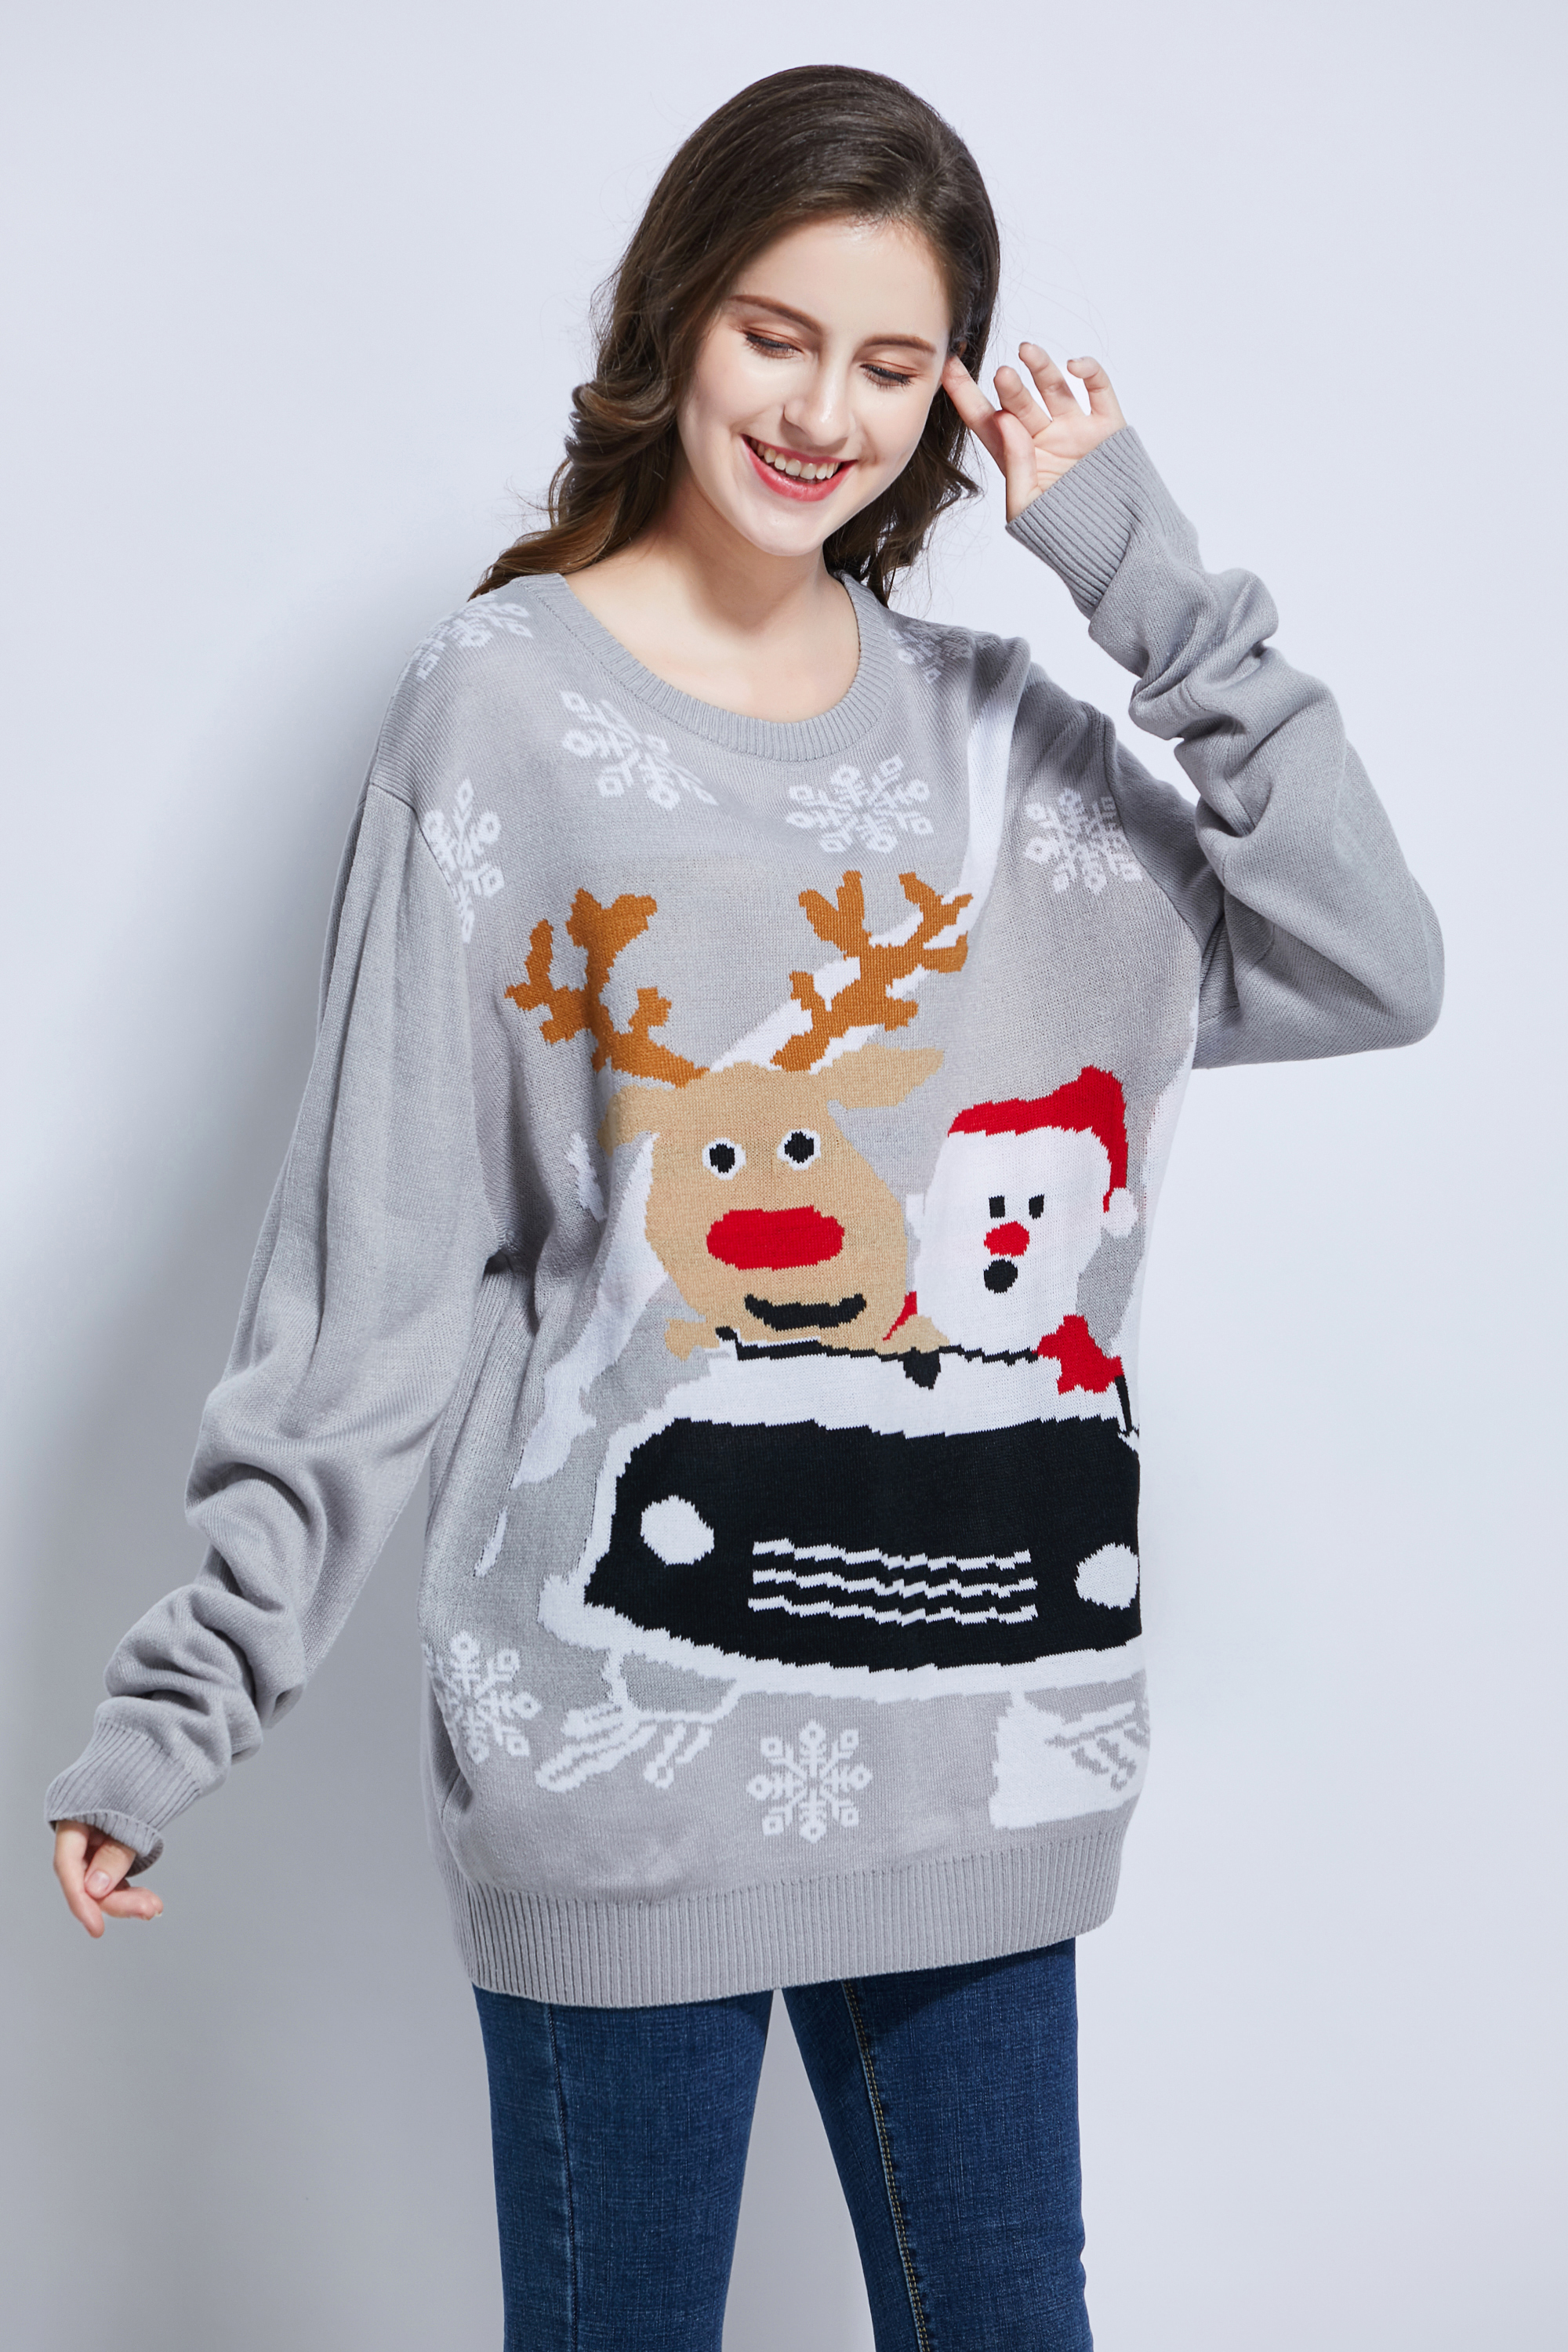 Team club player promotion theme motif jacquard unisex Christmas sweater rudolph reindeer Christmas sweater Xmas sweater